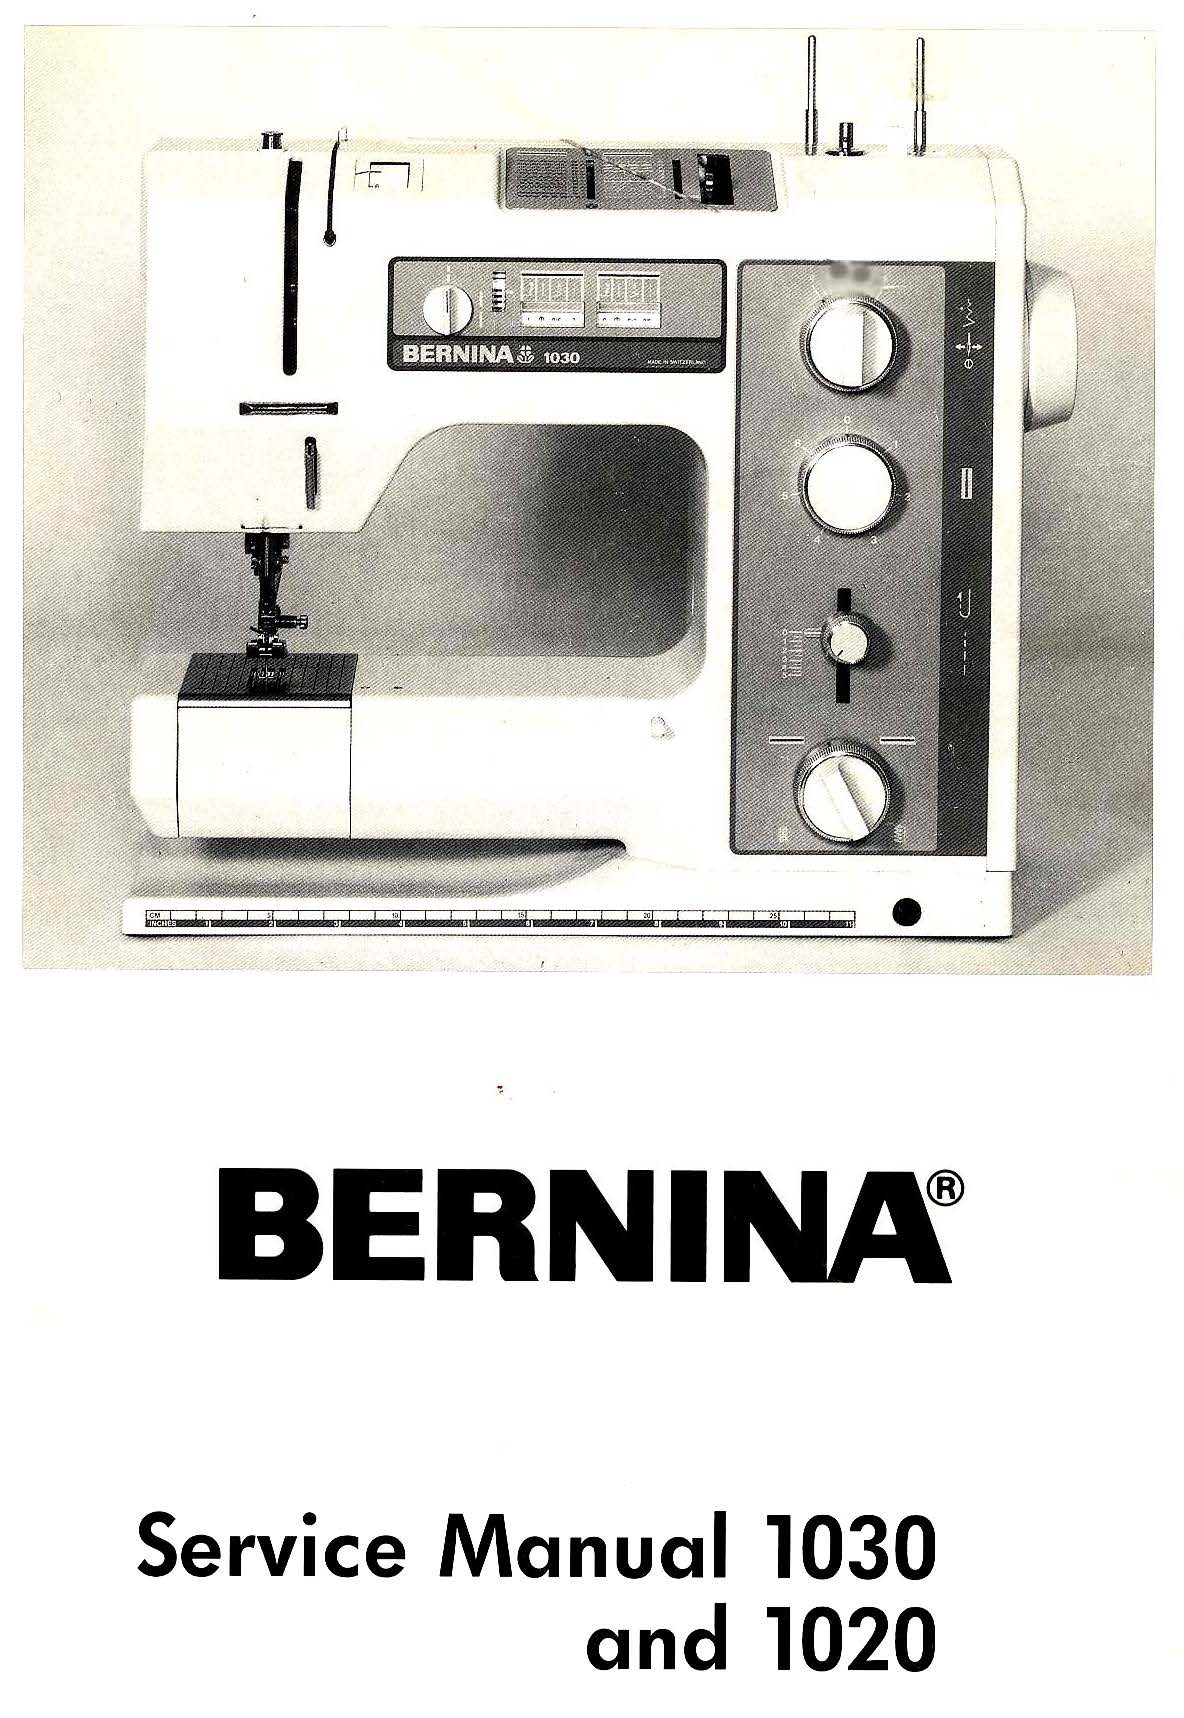 Service Manual For Bernina 1520/30 (Electrical only) Sewing Machine